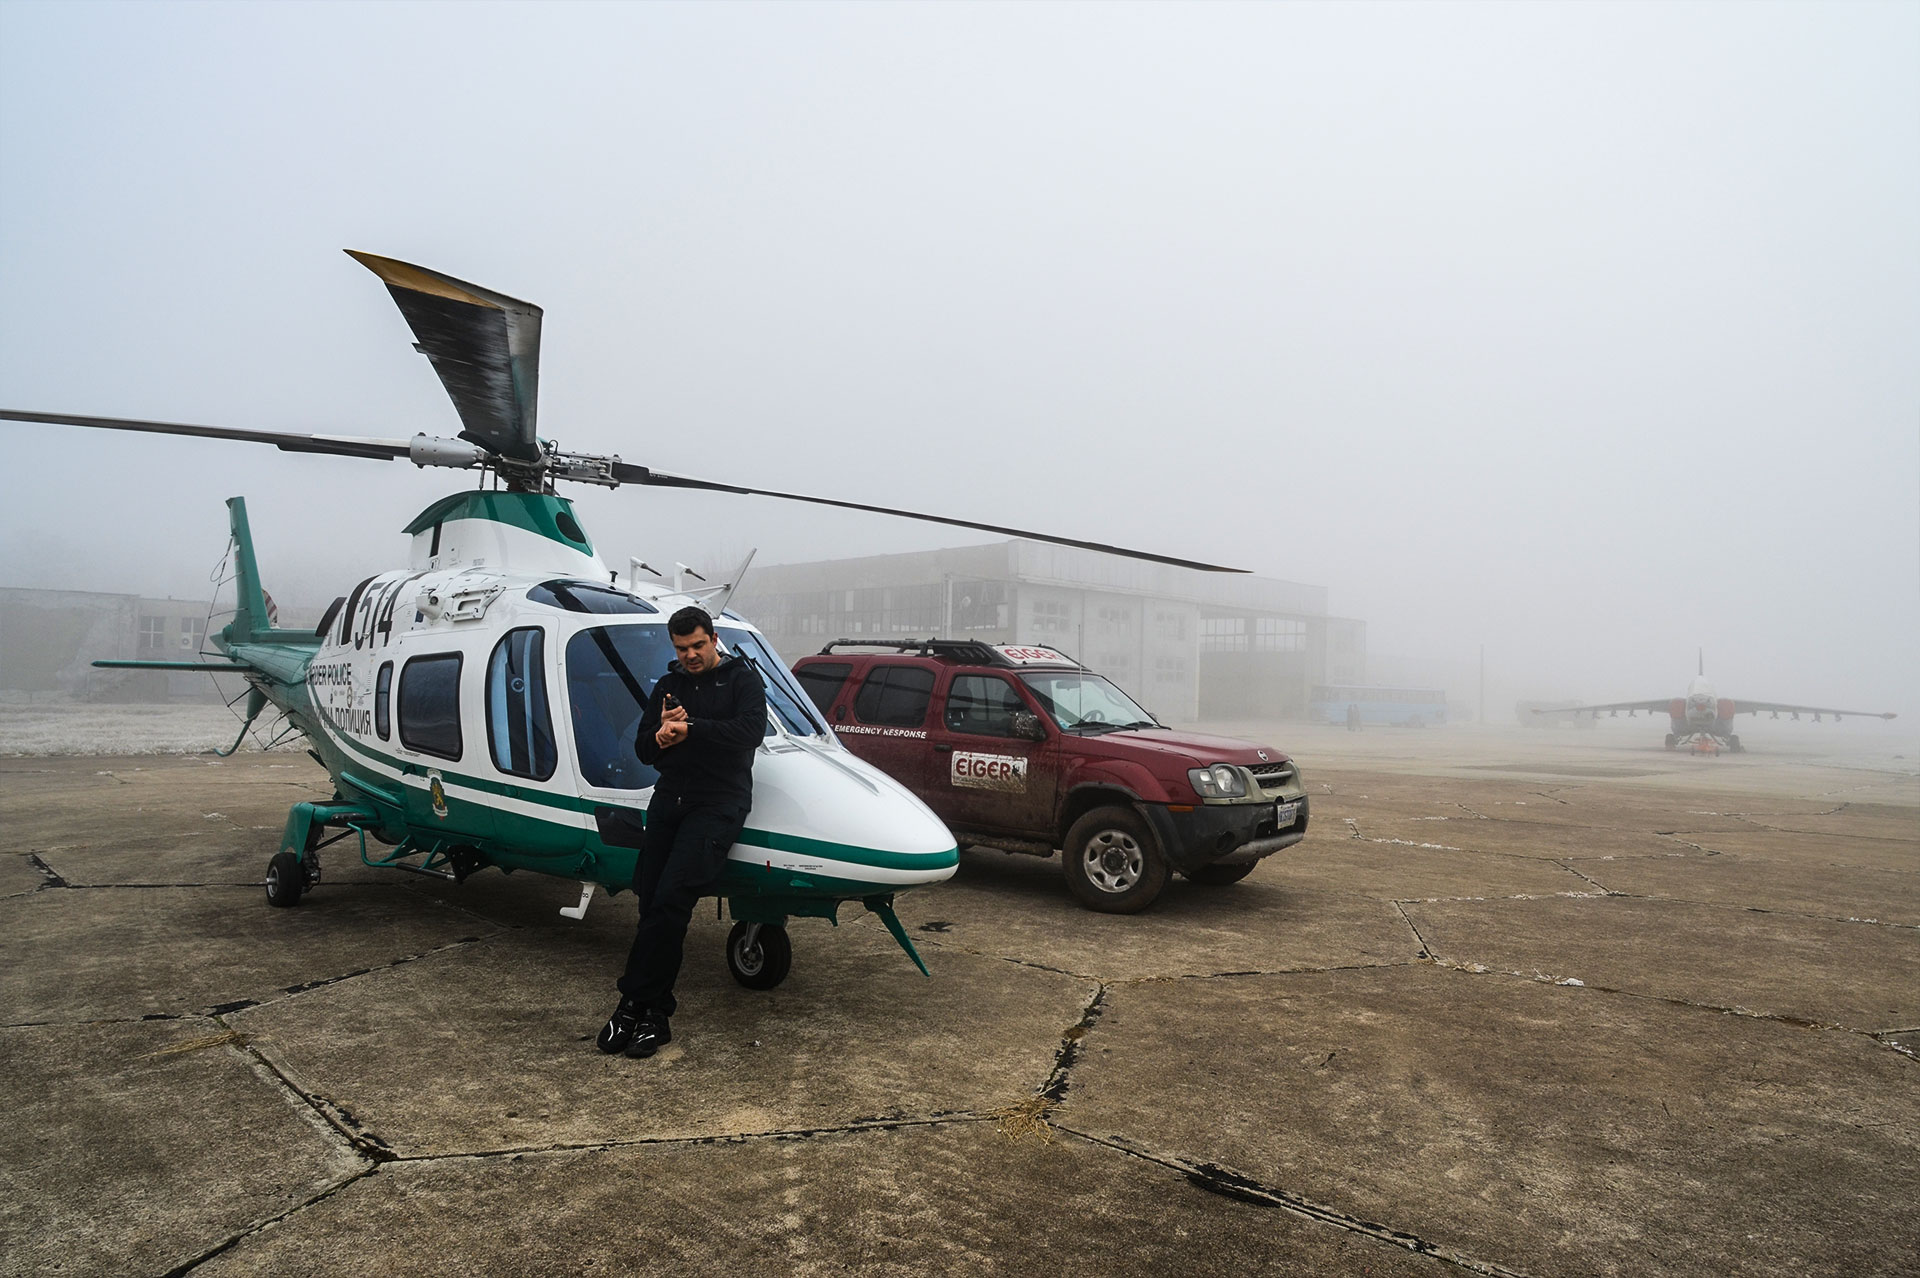 MISSION POSSIBLE : Air to AirRescue